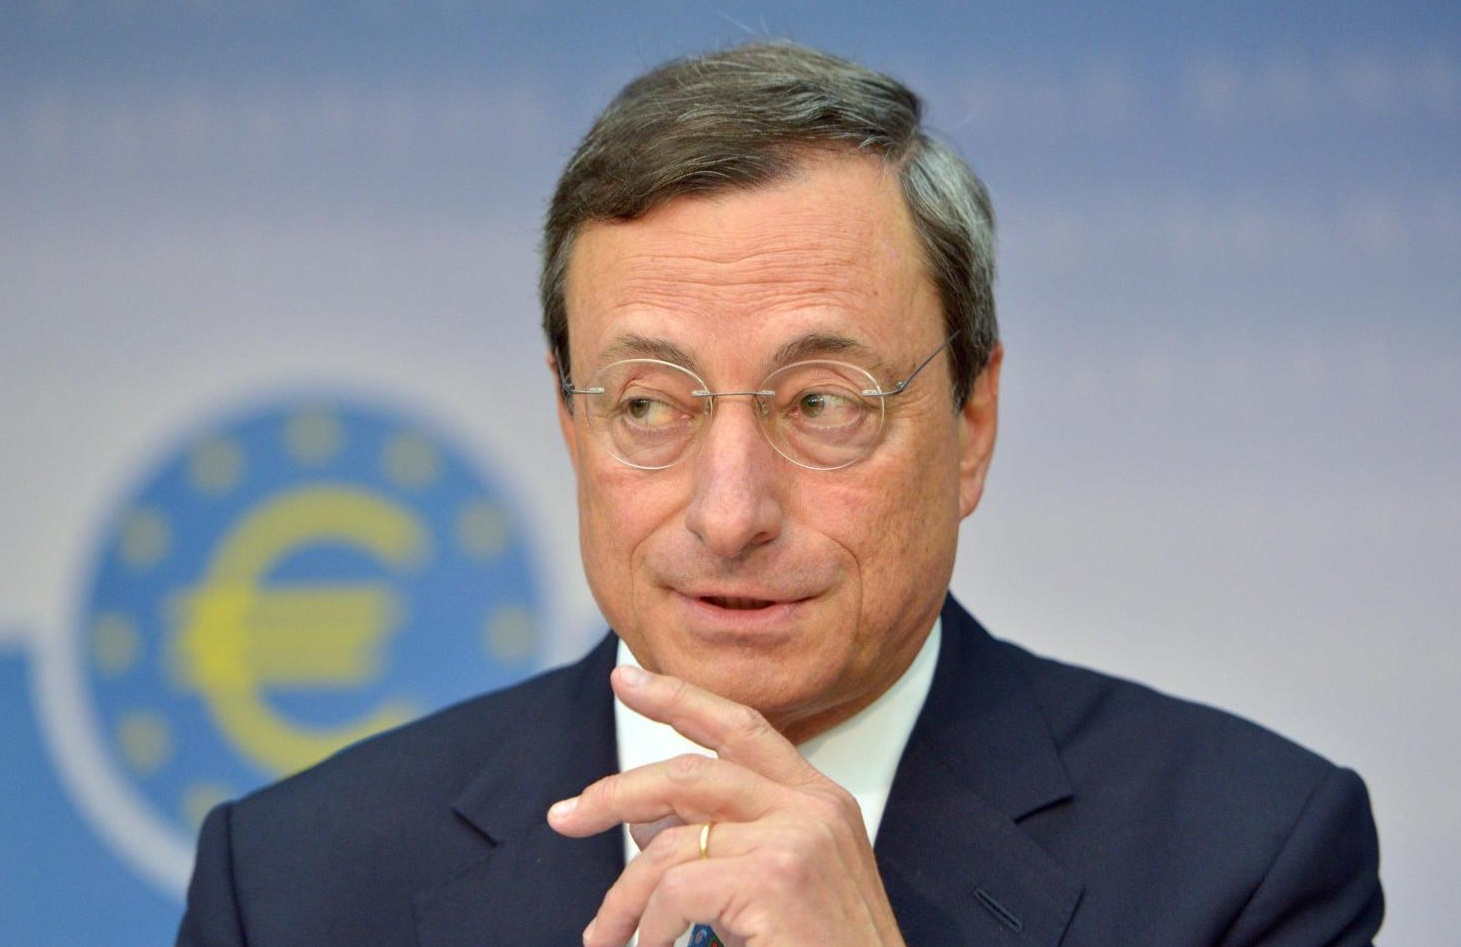 President of the European Central Bank (ECB) Mario Draghi speaks about monetary policy of the ECB at a press conference in Frankfurt Main, Germany, 06 September 2012. The euro crisis preoccupies analysts, rating agencies and financial experts world wide.  ANSA/BORIS ROESSLER